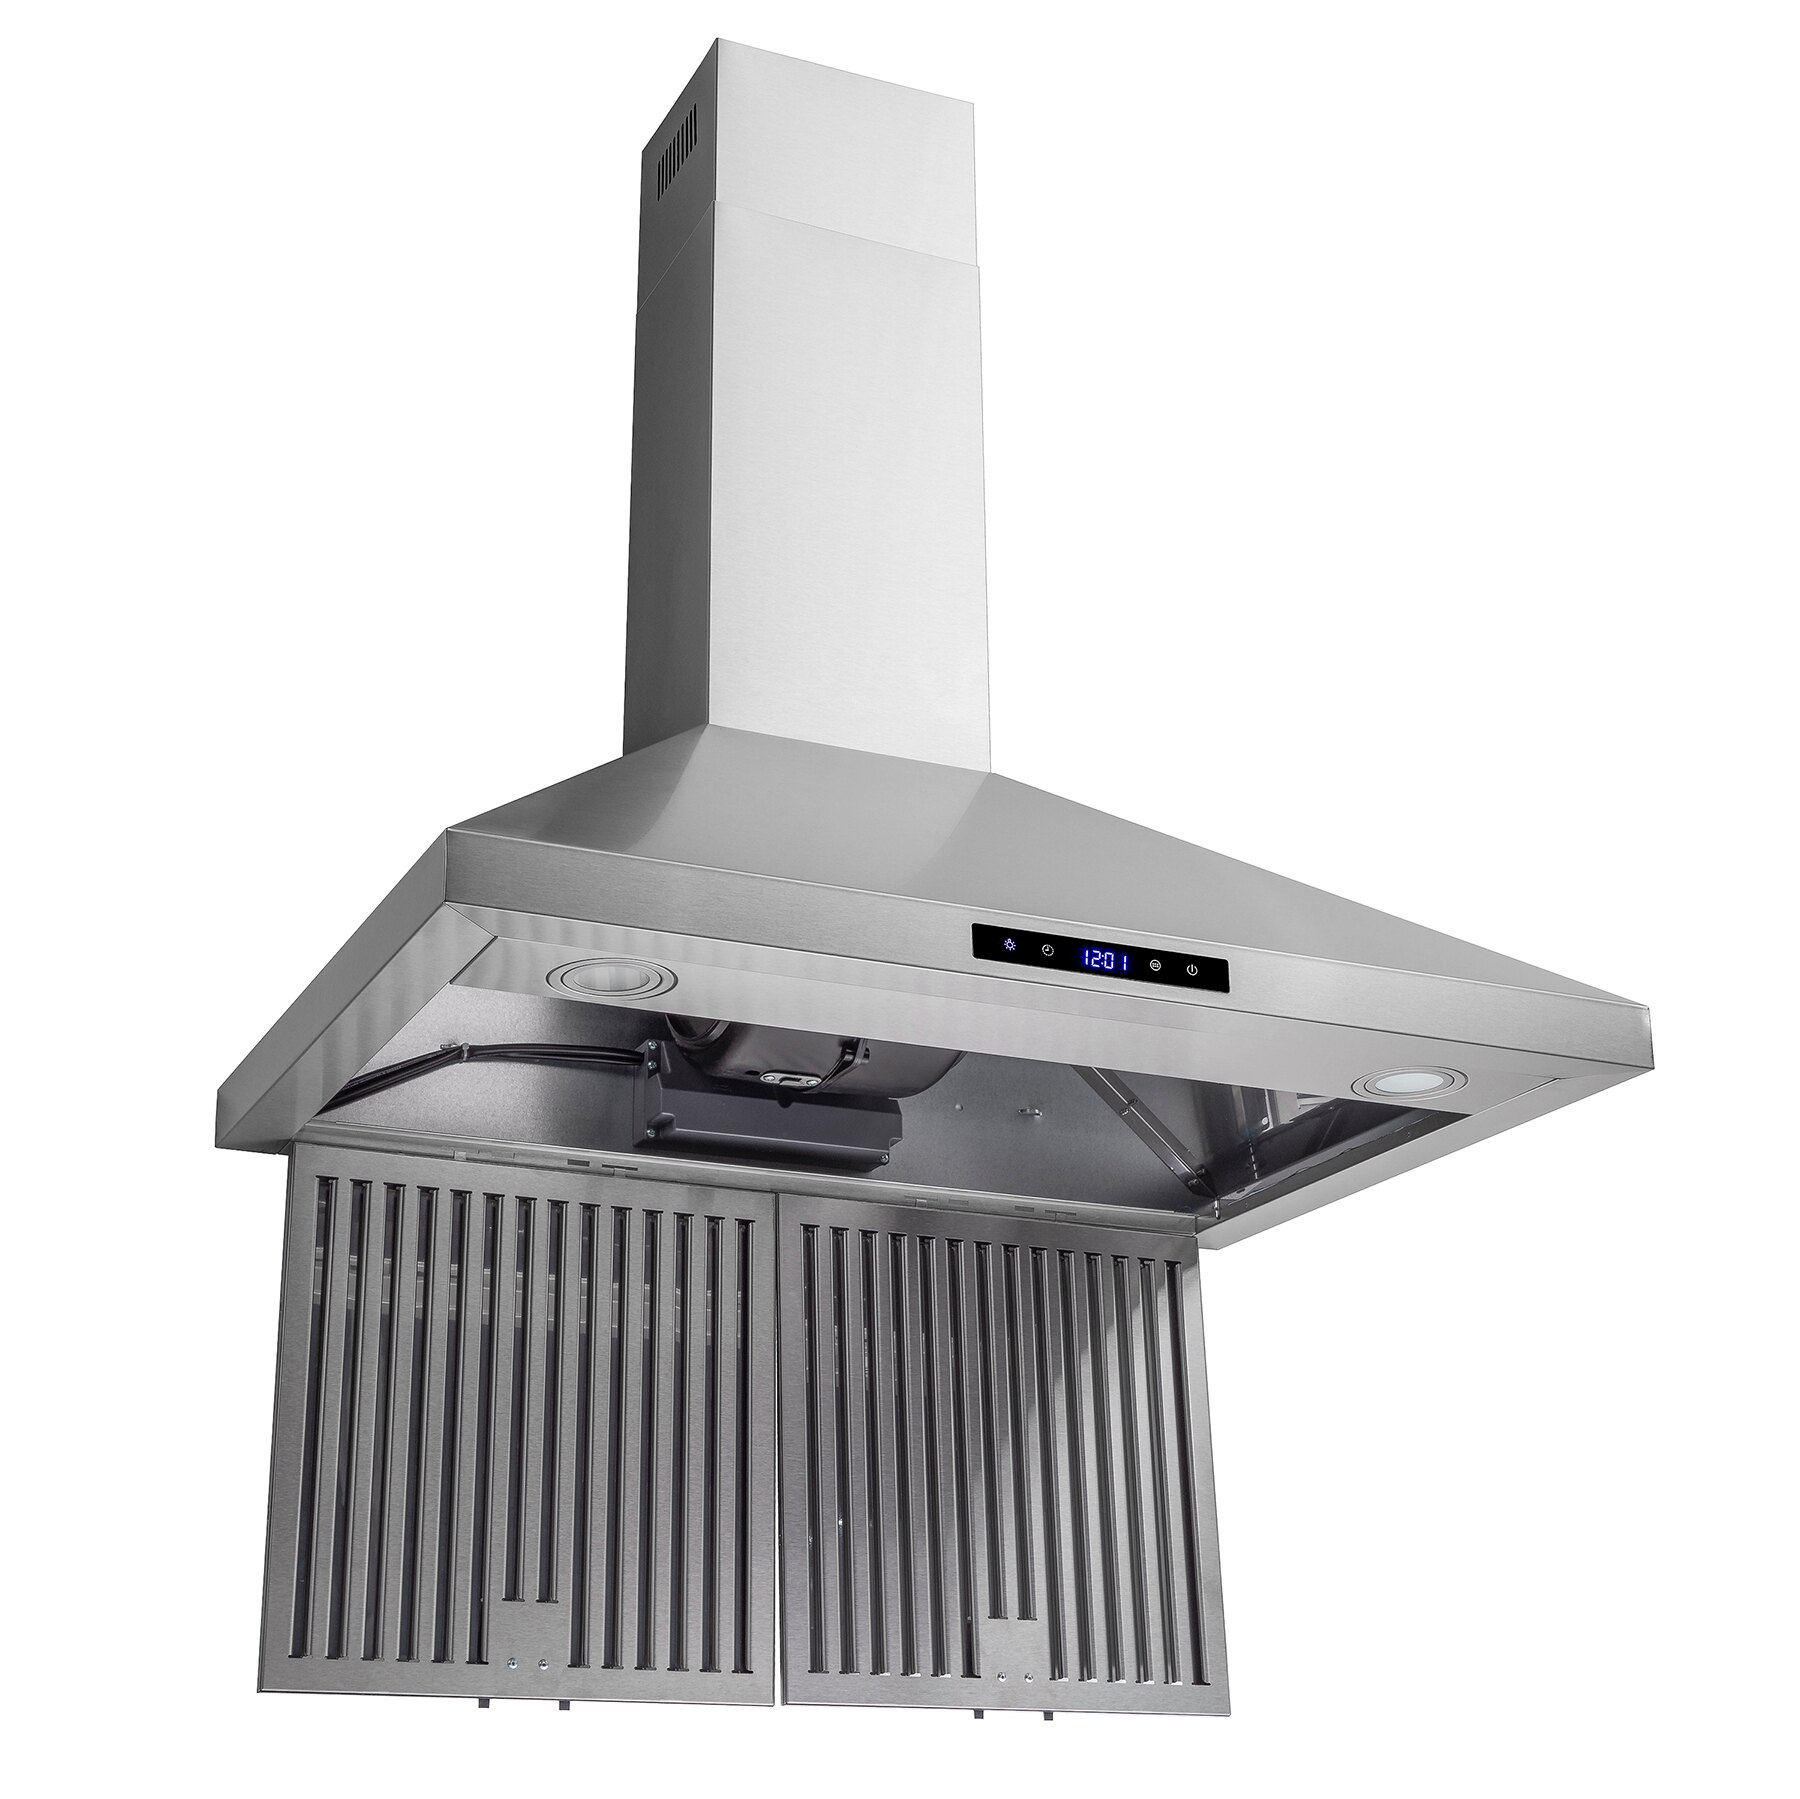 "AKDY 30"" Wall Mount Stainless Steel Touch Control Panel Kitchen Range Hood Cooking Vent 5"